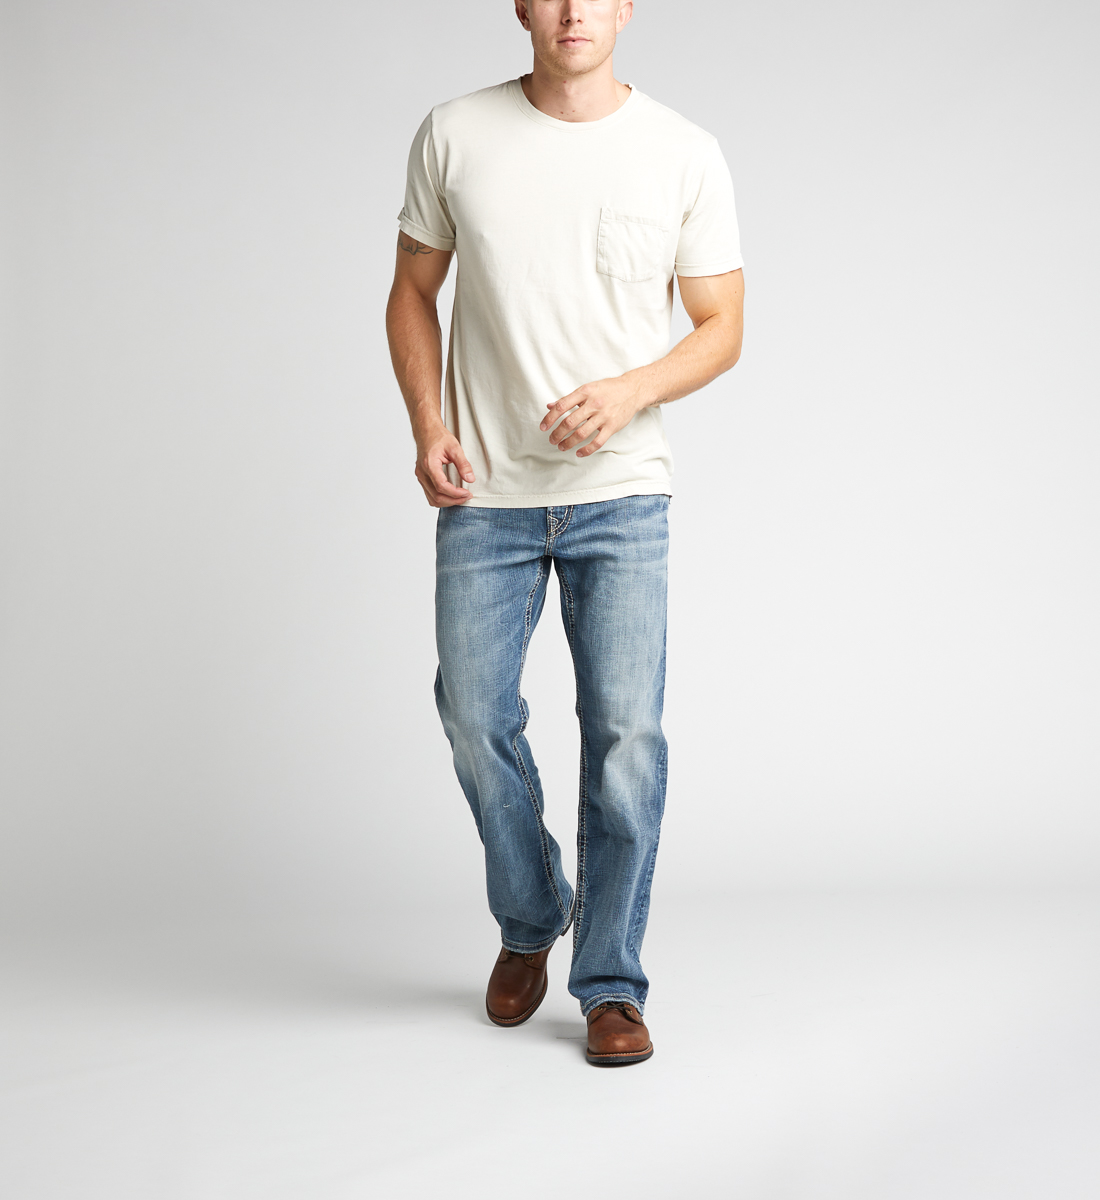 Silver Jeans Craig Bootcut Medium Wash